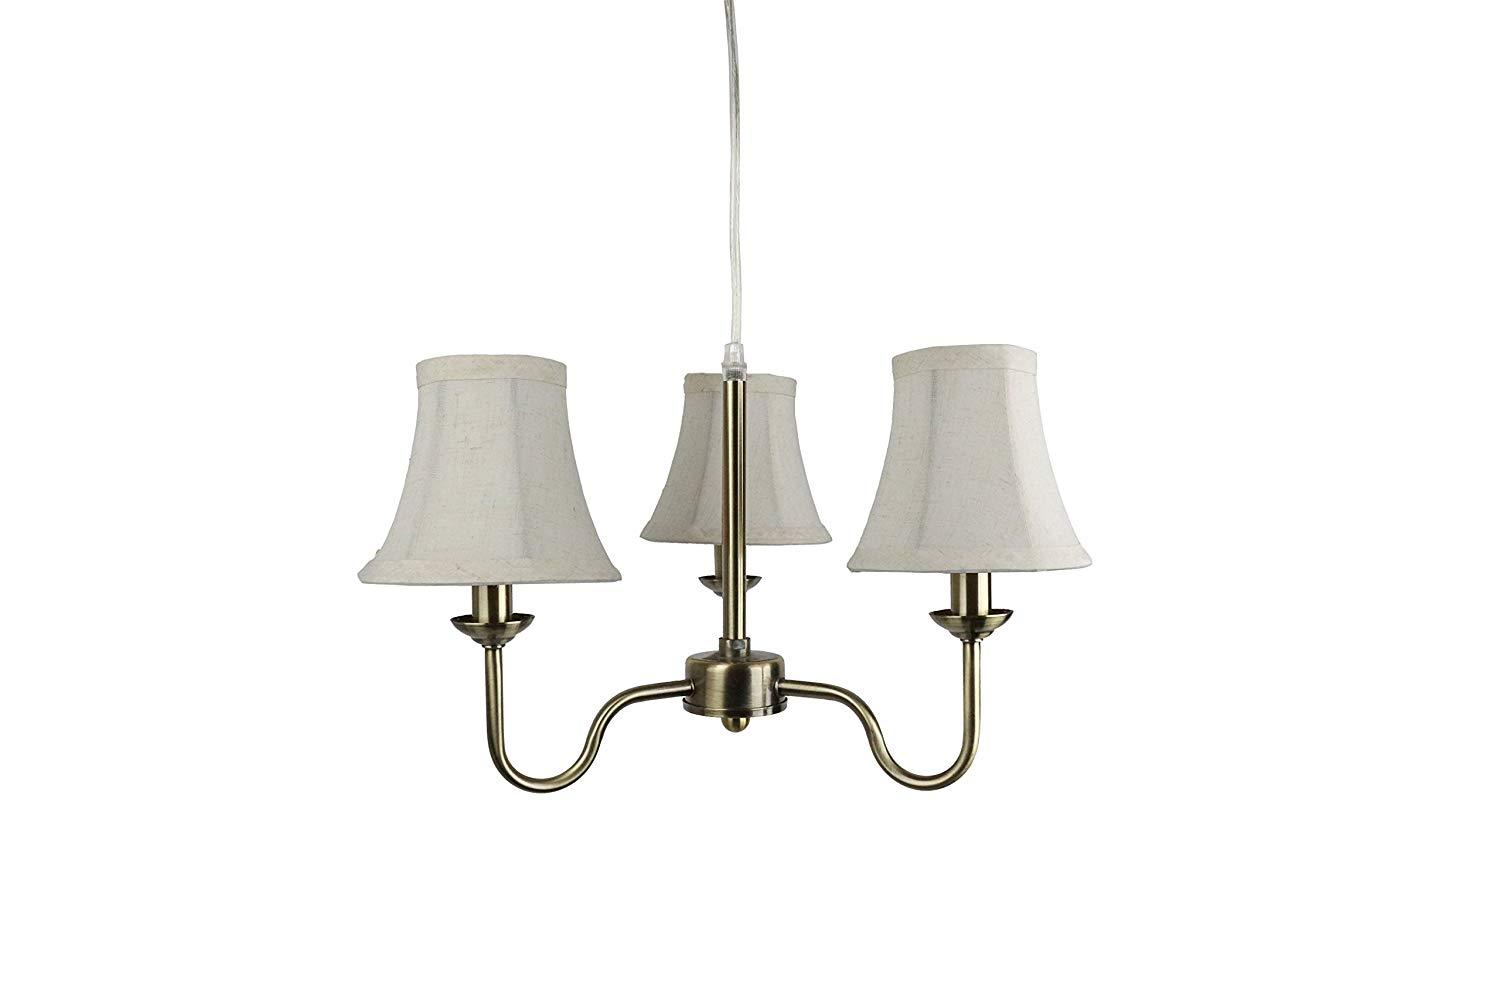 Urbanest Portable Shire 3-Light Chandelier with Natural Linen Bell Shades